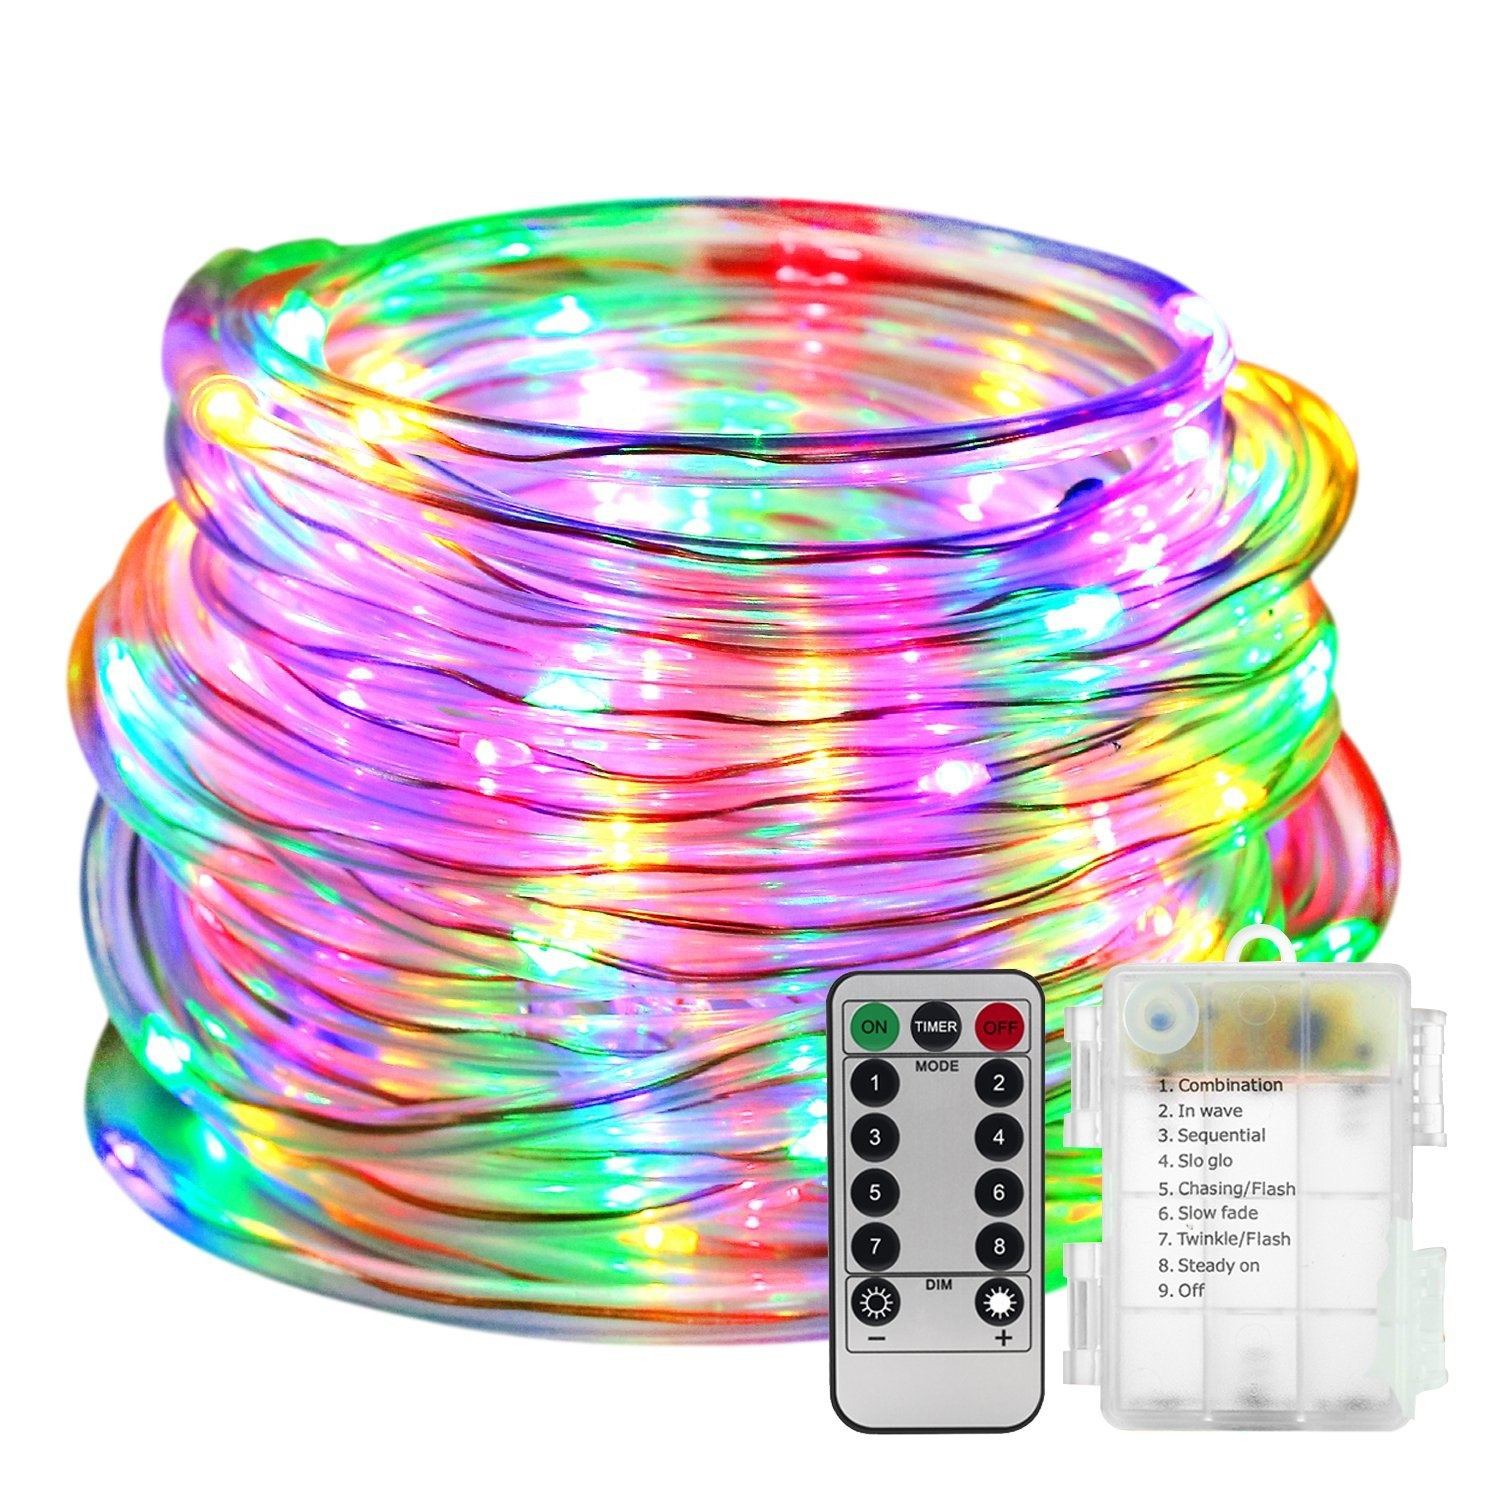 HENYNET LED Rope Lights Battery Operated Waterproof 33ft String Lights with Remote Timer Firefly Lights Dimmable Fairy Lights